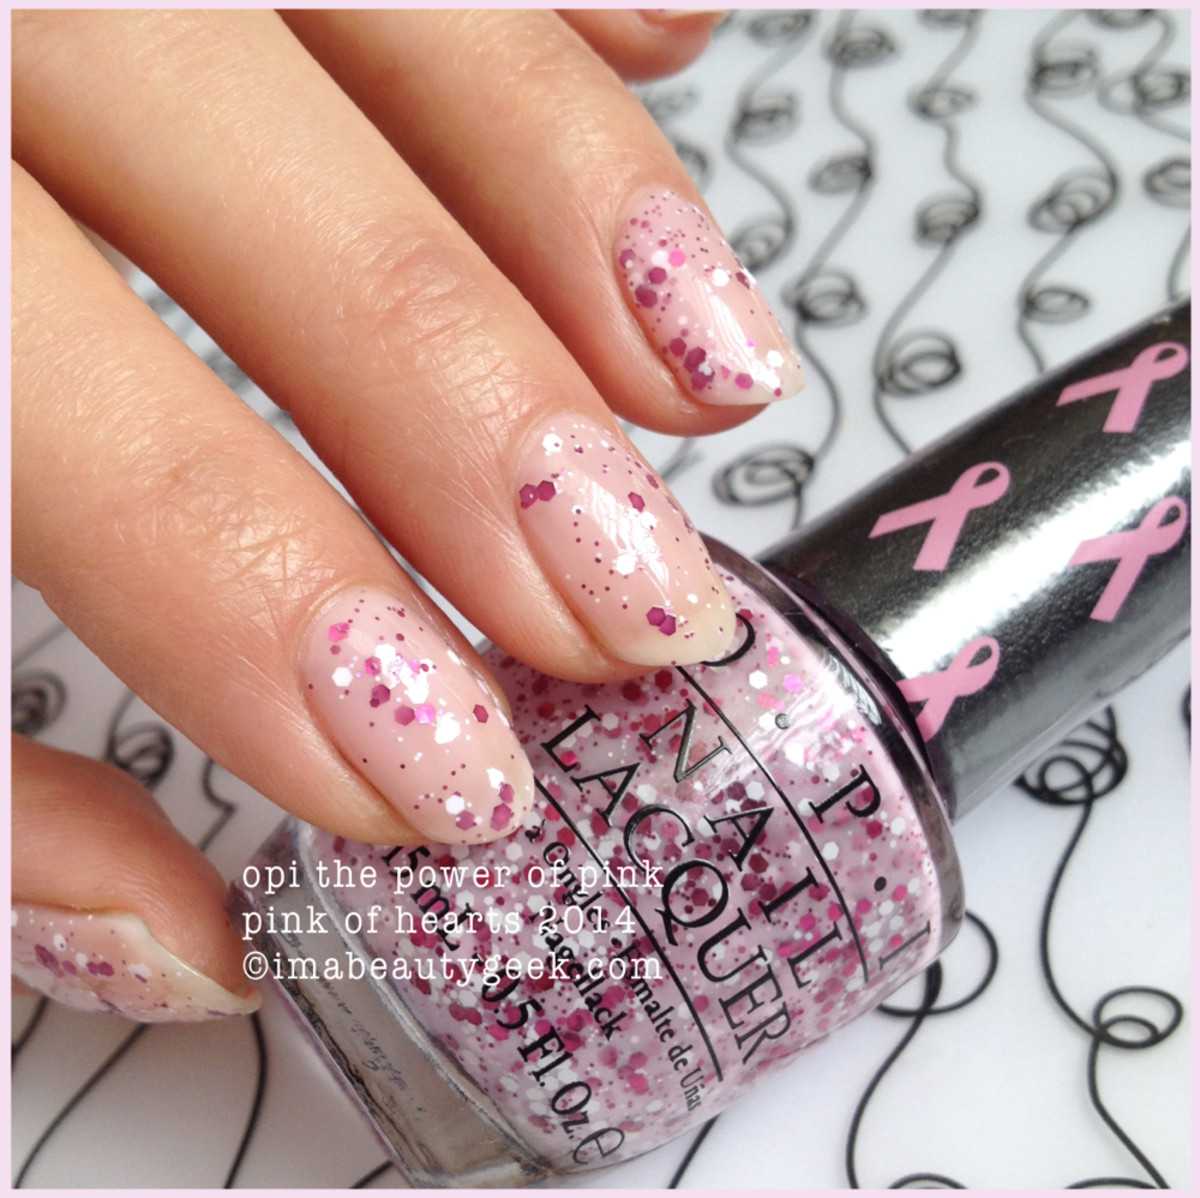 OPI The Power of Pink of Hearts 2014 BCA